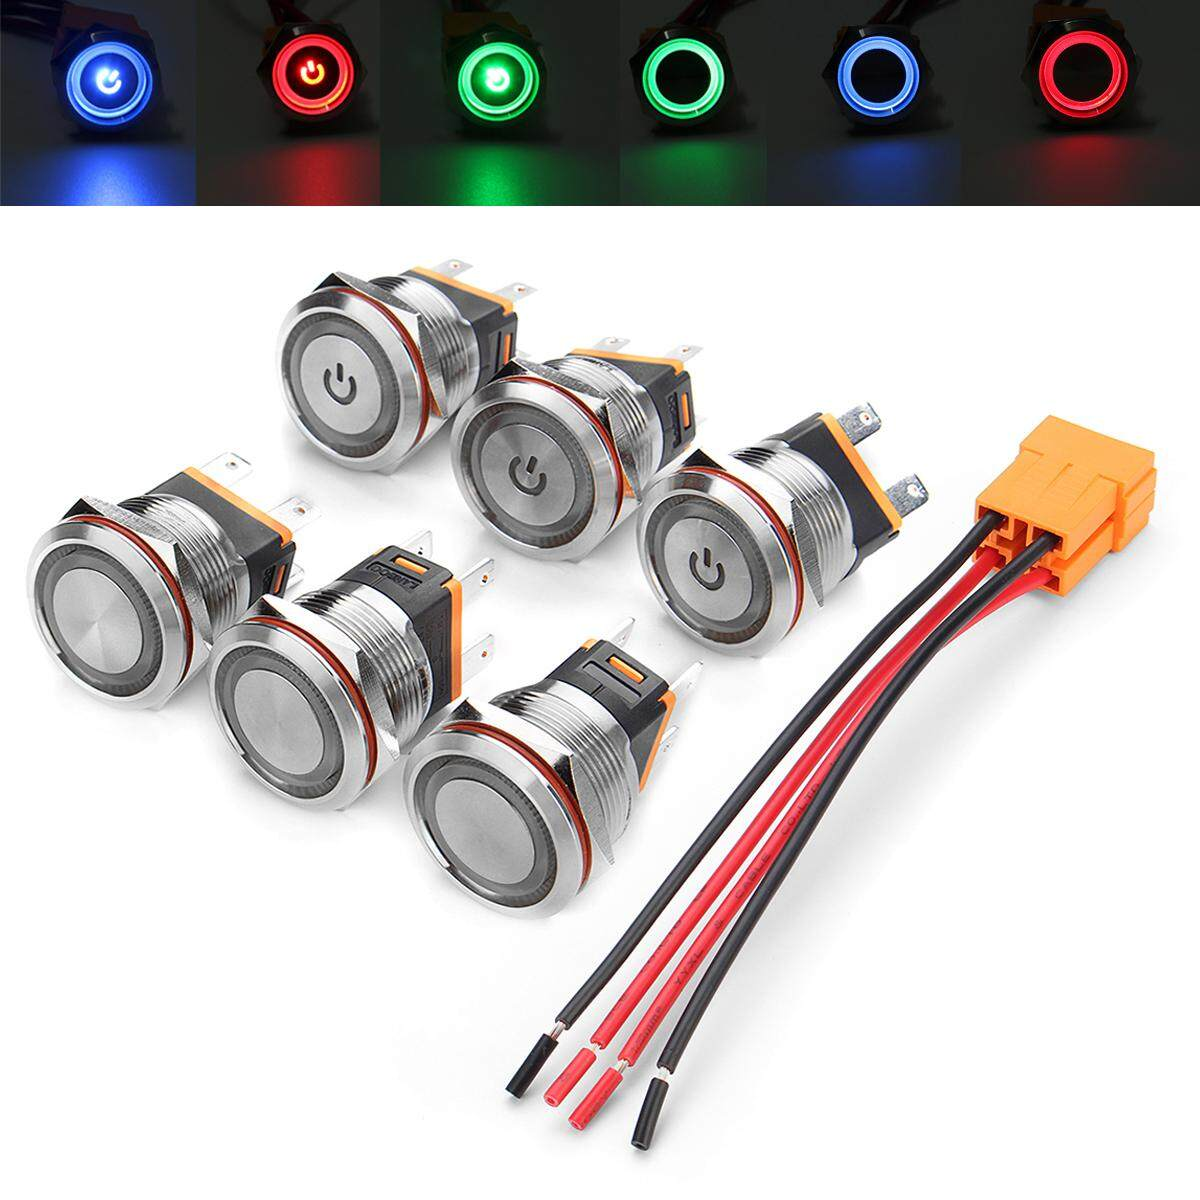 Car Switches For Sale Auto Online Brands Prices 1997 Nissan Pathfinder Ignition Switch Wiring 1991 22mm 12v 24v Chrome Metal Latching Angel Halo Illuminated Led Socket Lead Intl